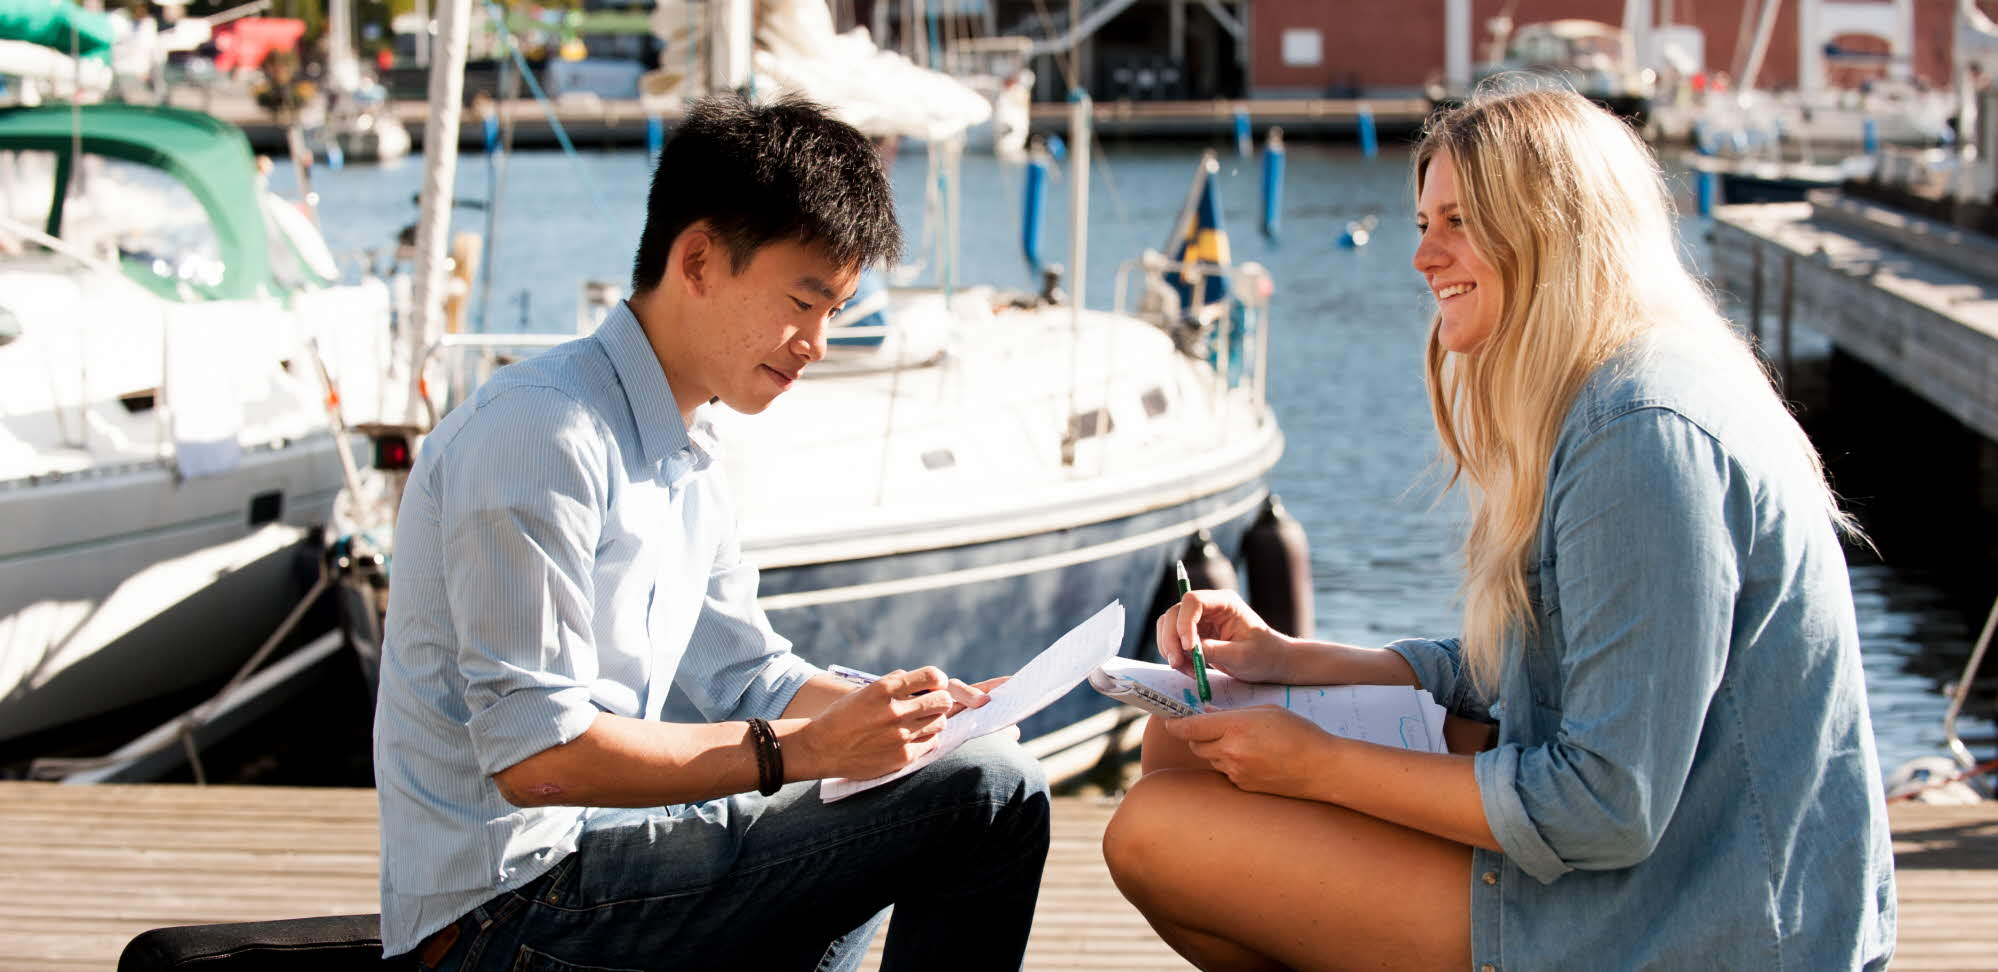 Two summer academy students sitting on a pier.